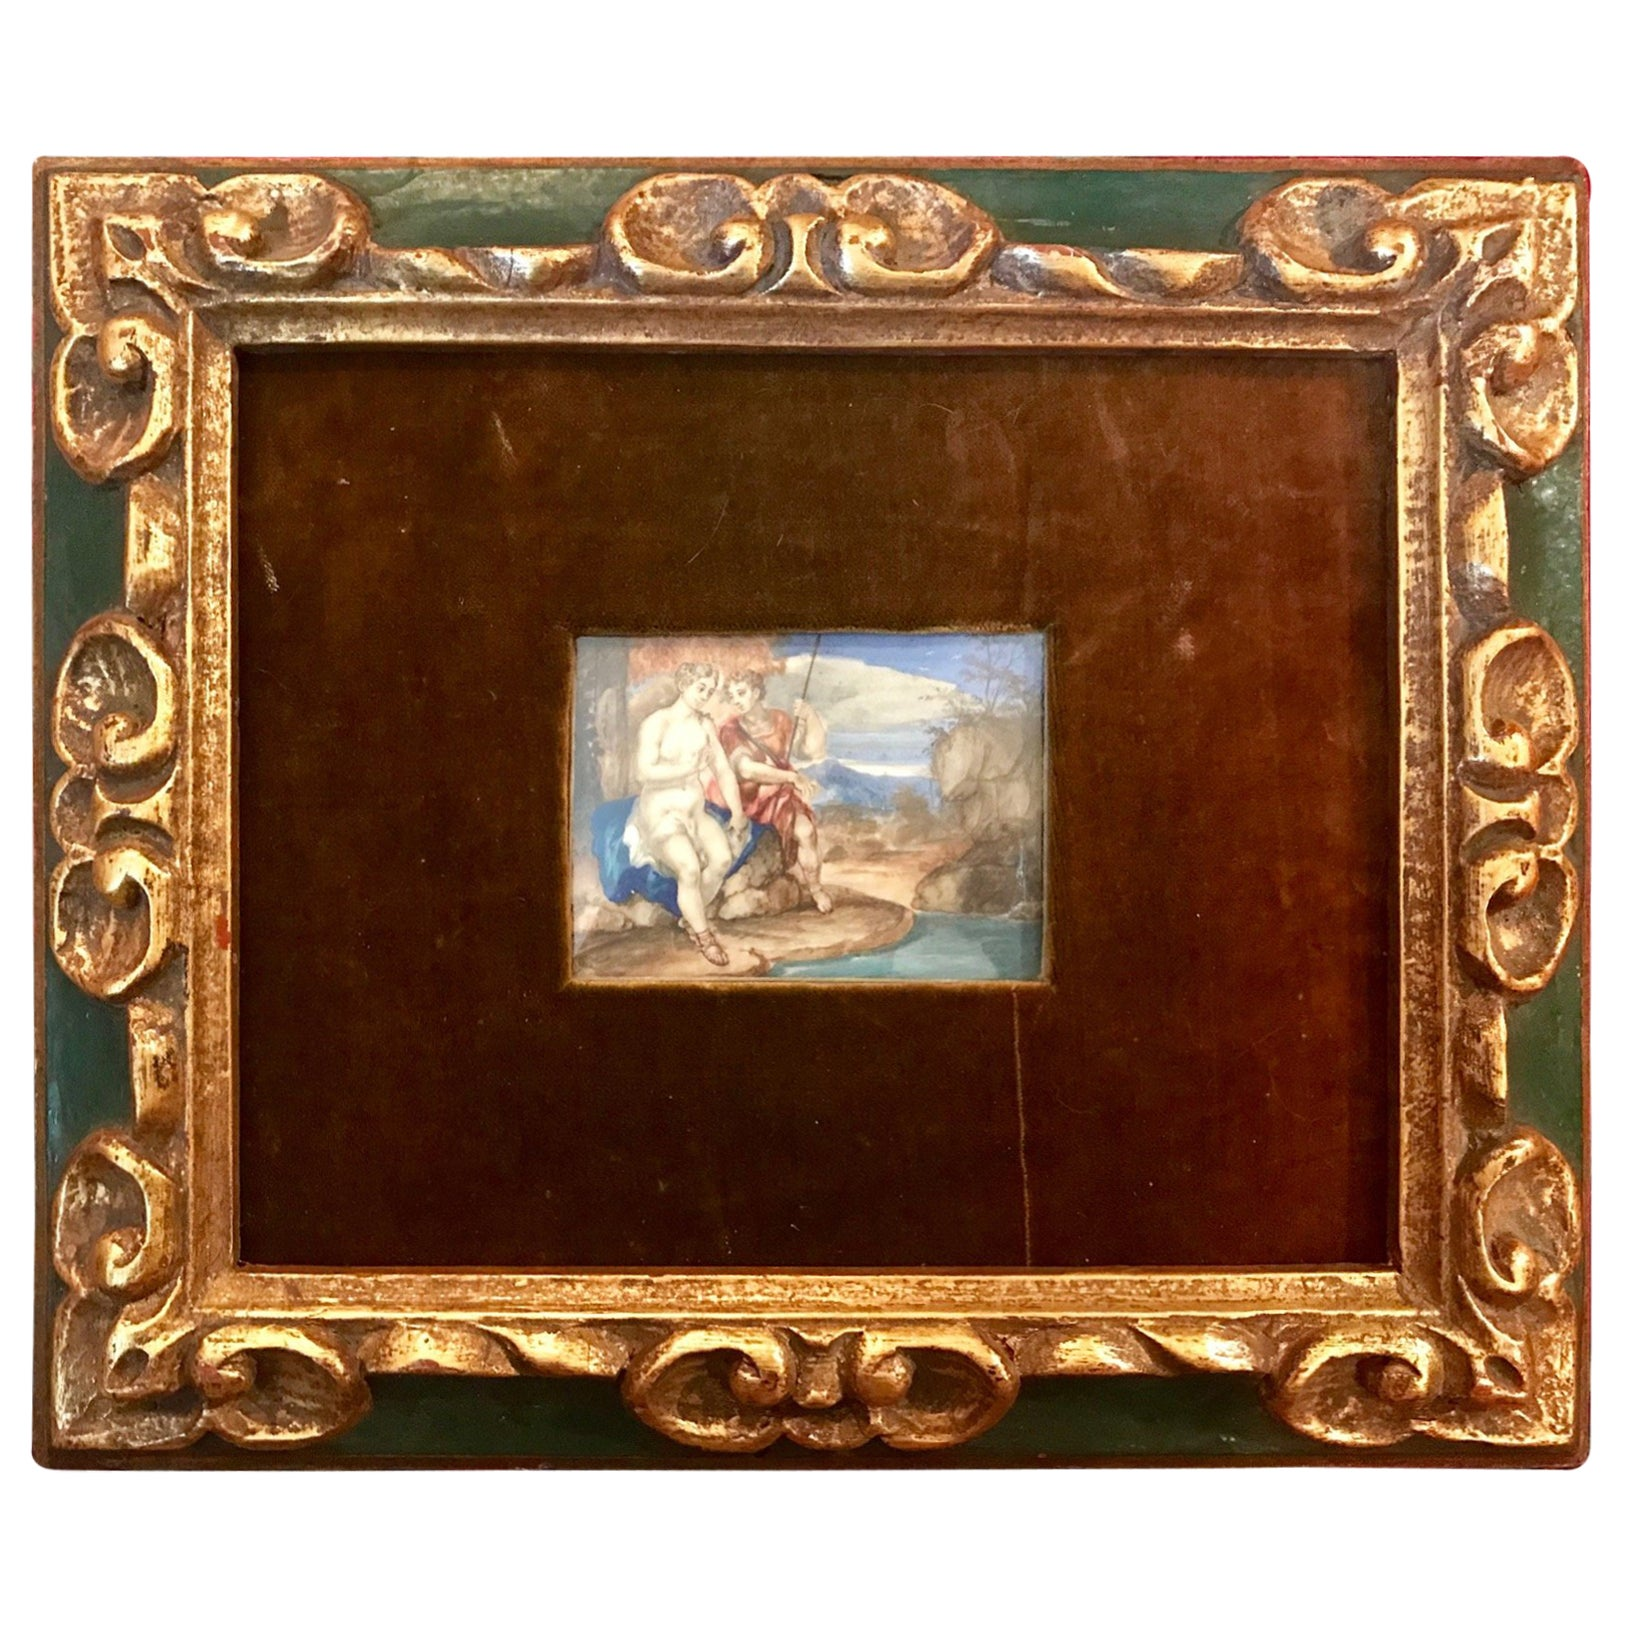 18th Century French Miniature Genre Painting